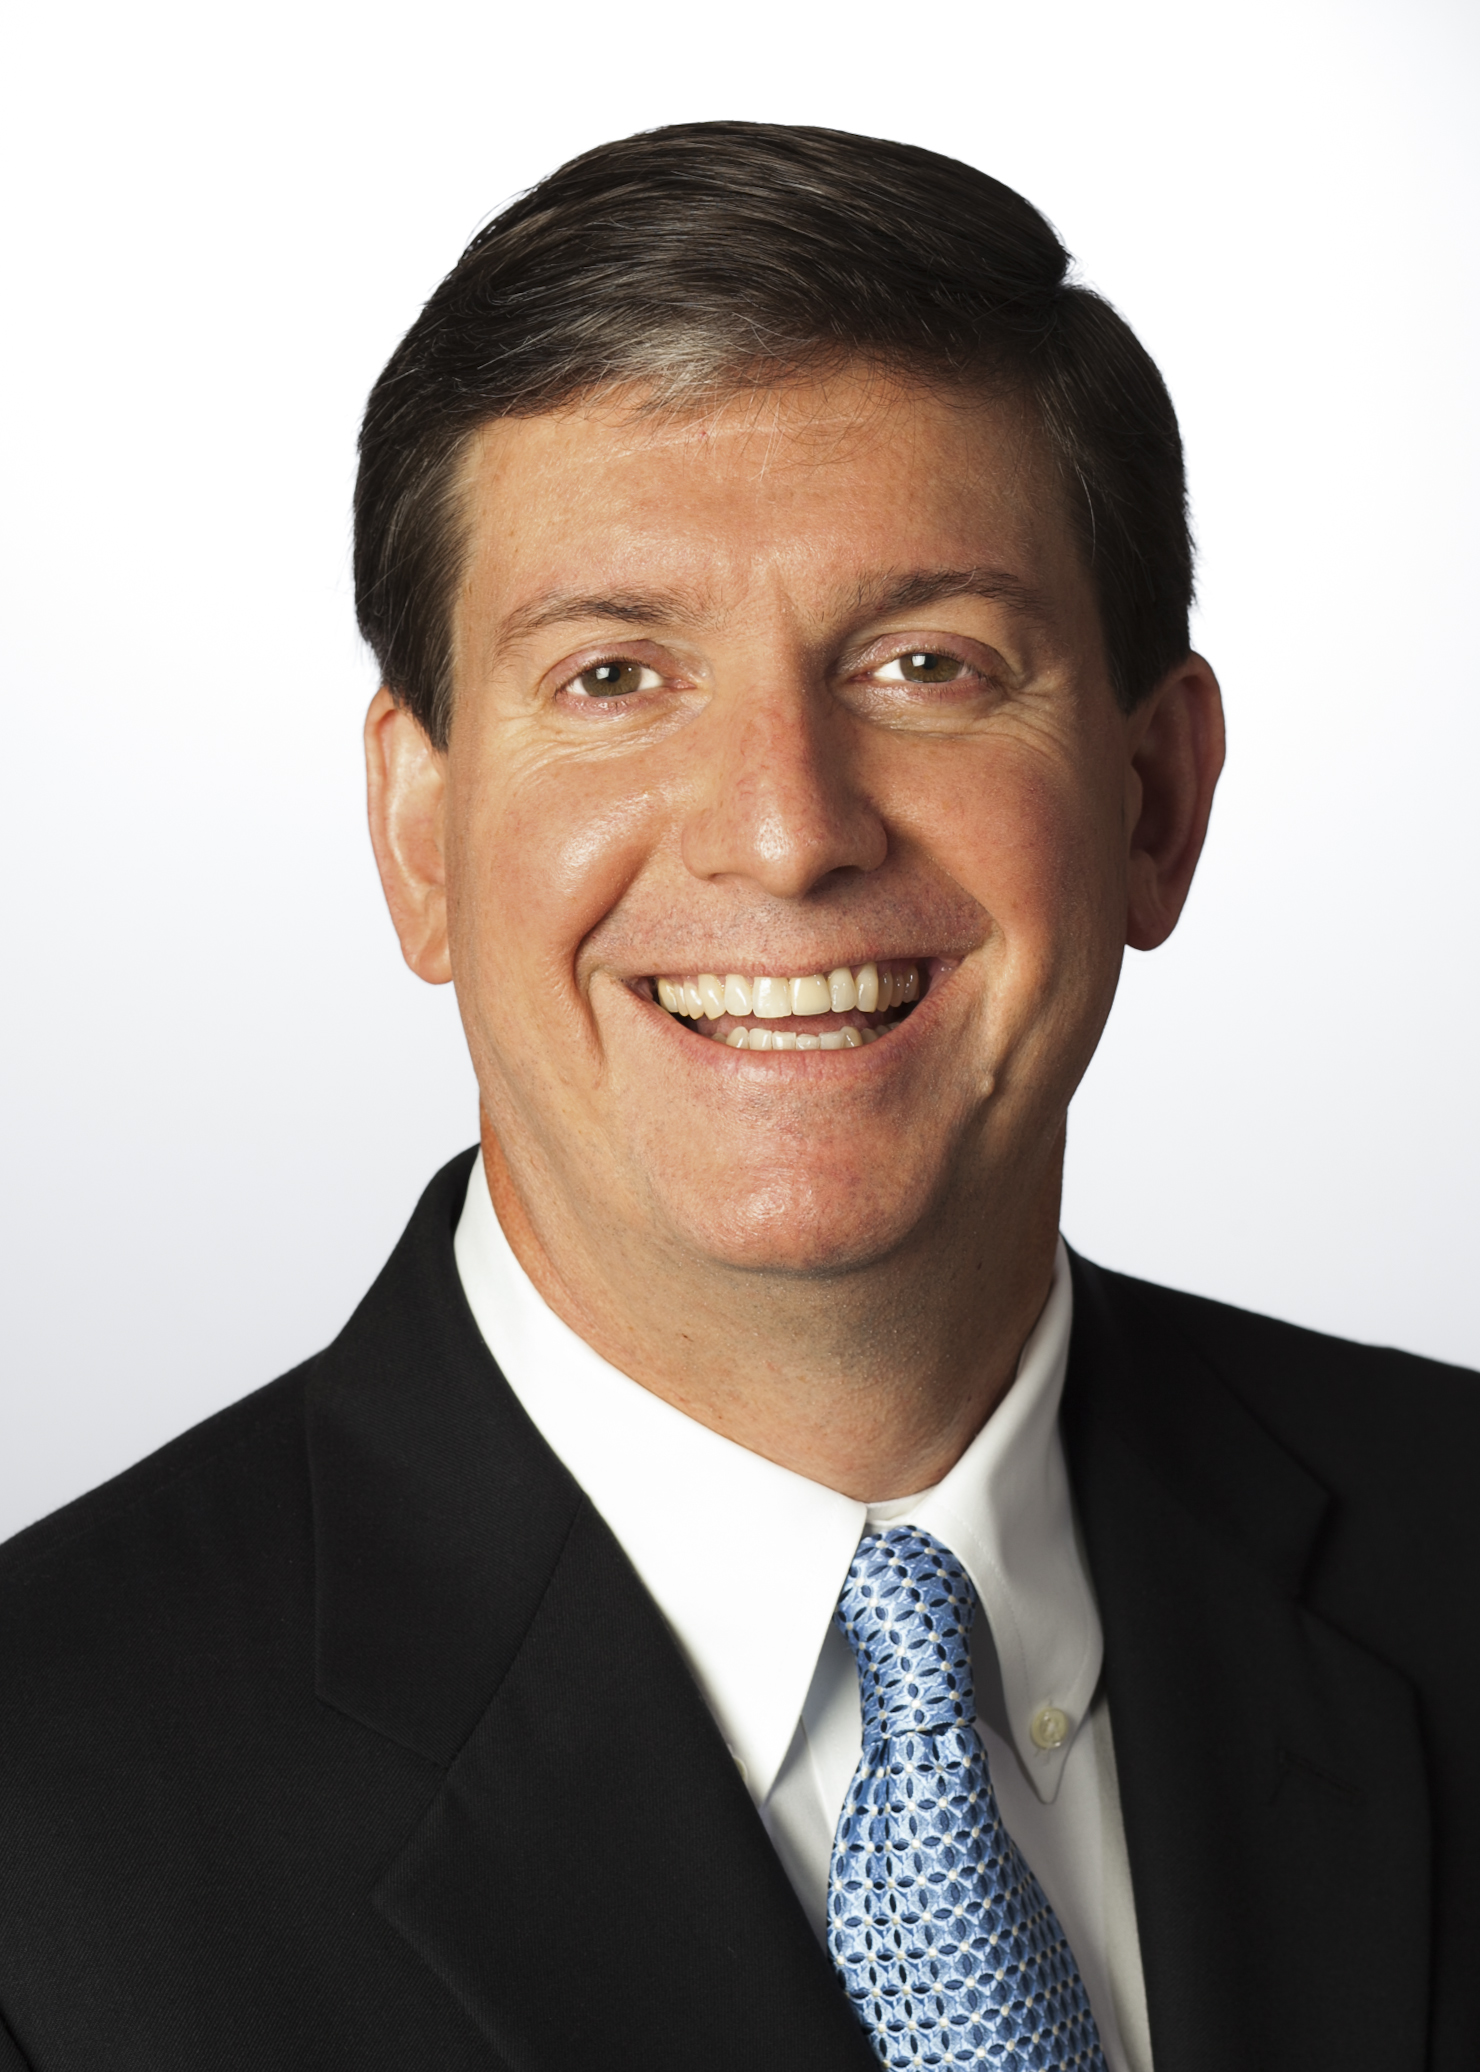 Jim David, financial advisor La Plata MD